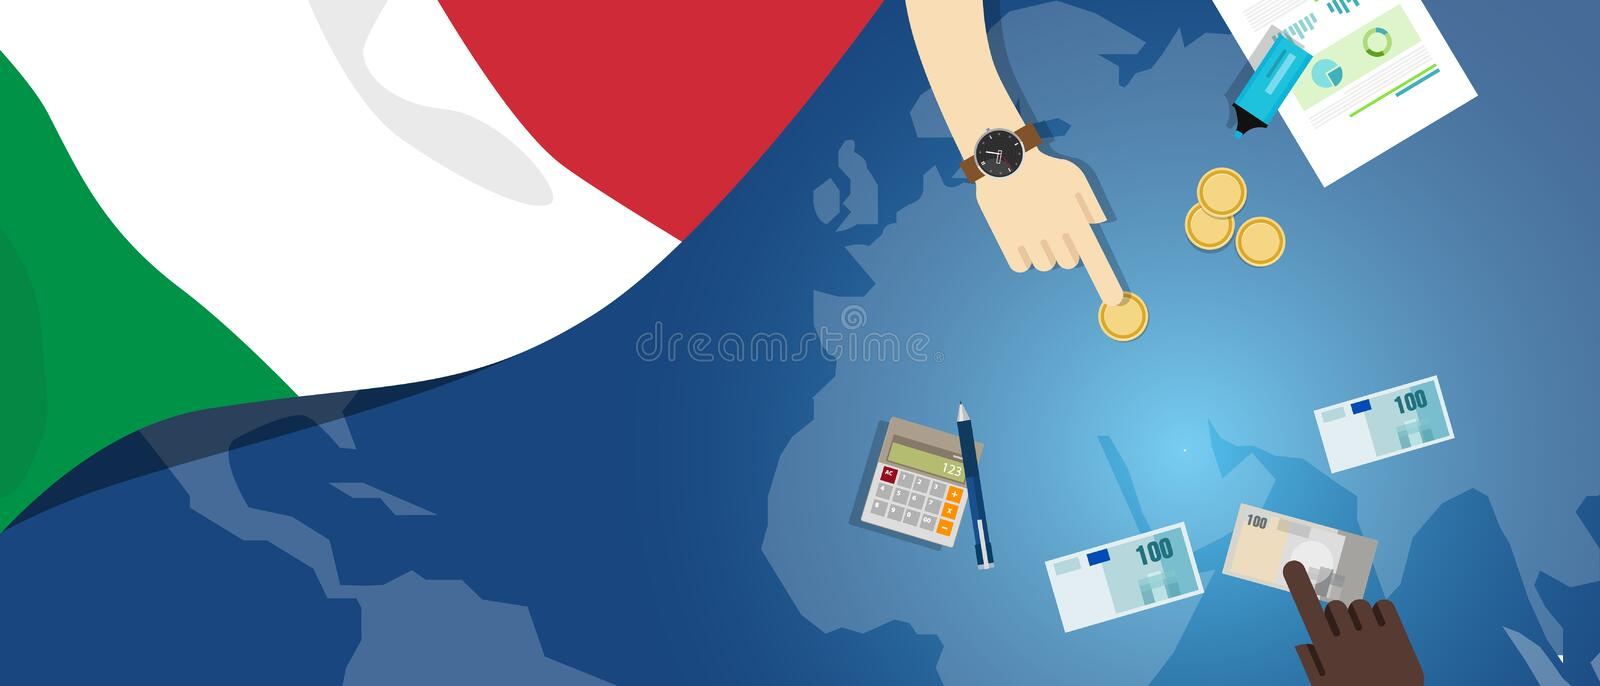 Italy economy fiscal money trade concept illustration of financial banking budget with flag map and currency. Vector vector illustration